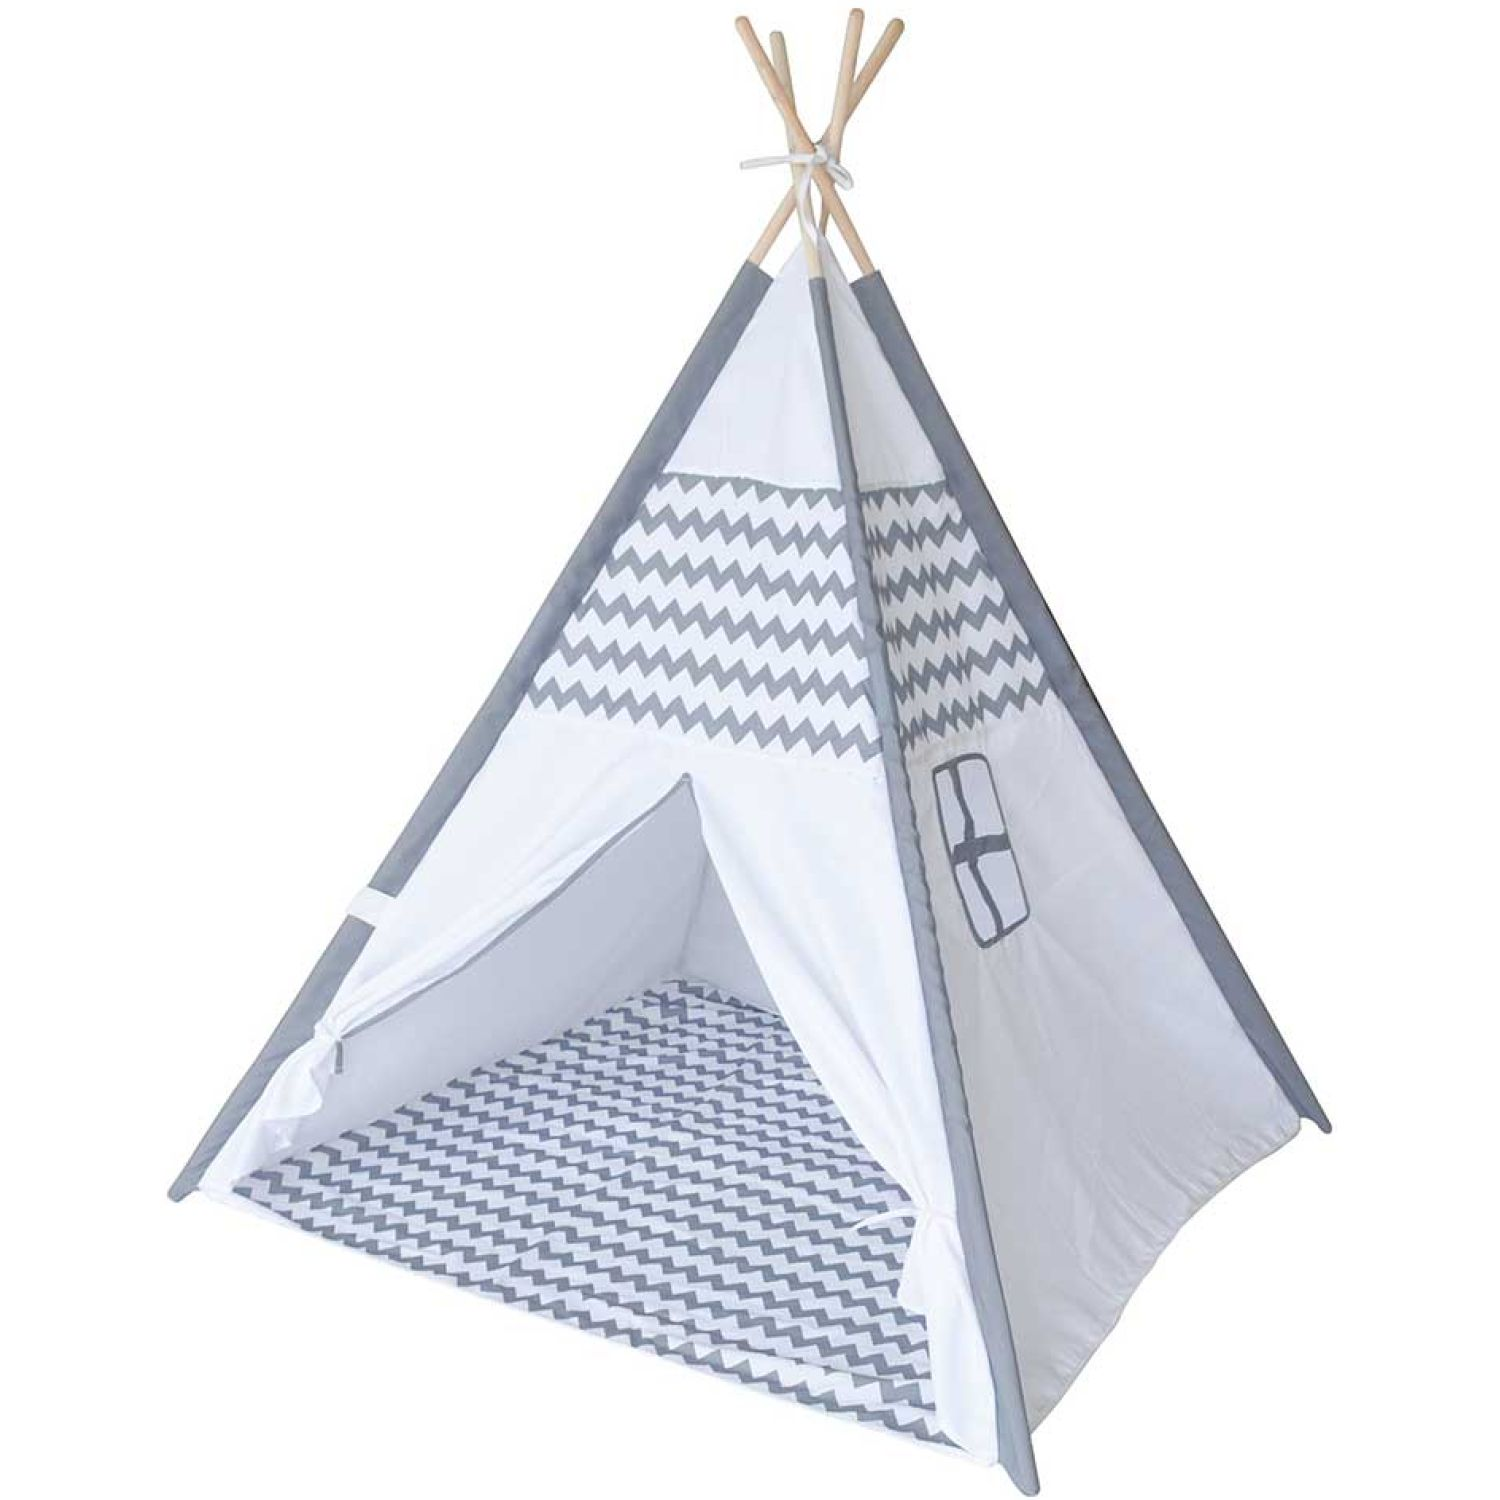 GAME POWER Casita Carpa Teepee Game Power Varios Casas de juguete